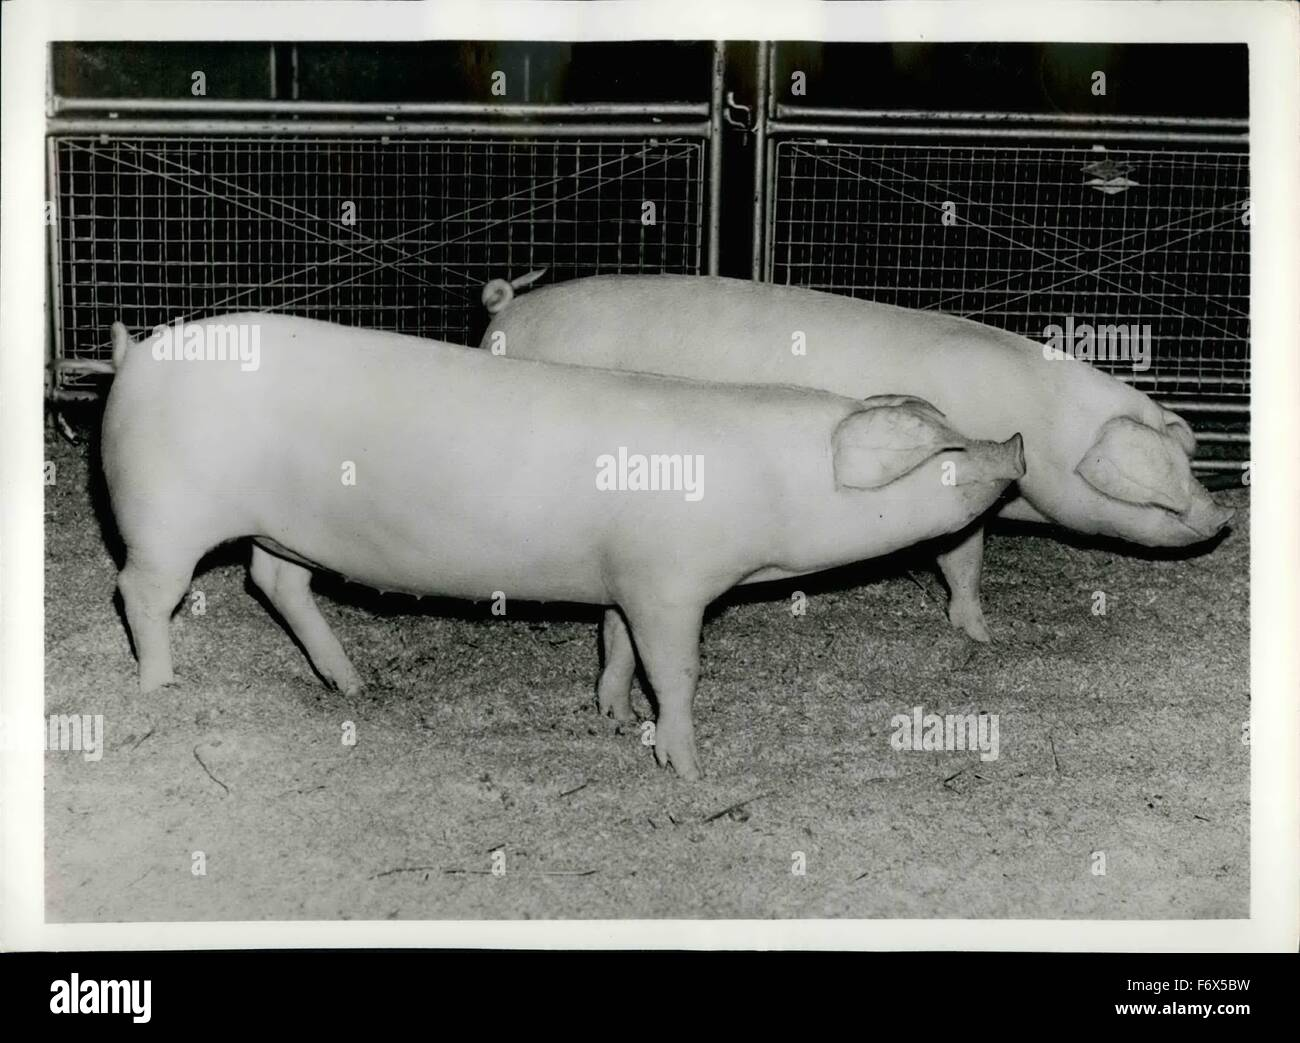 1968 - Winners By A Length. Described as having, fine length for their age and exceptionally good hams pair of August - Stock Image